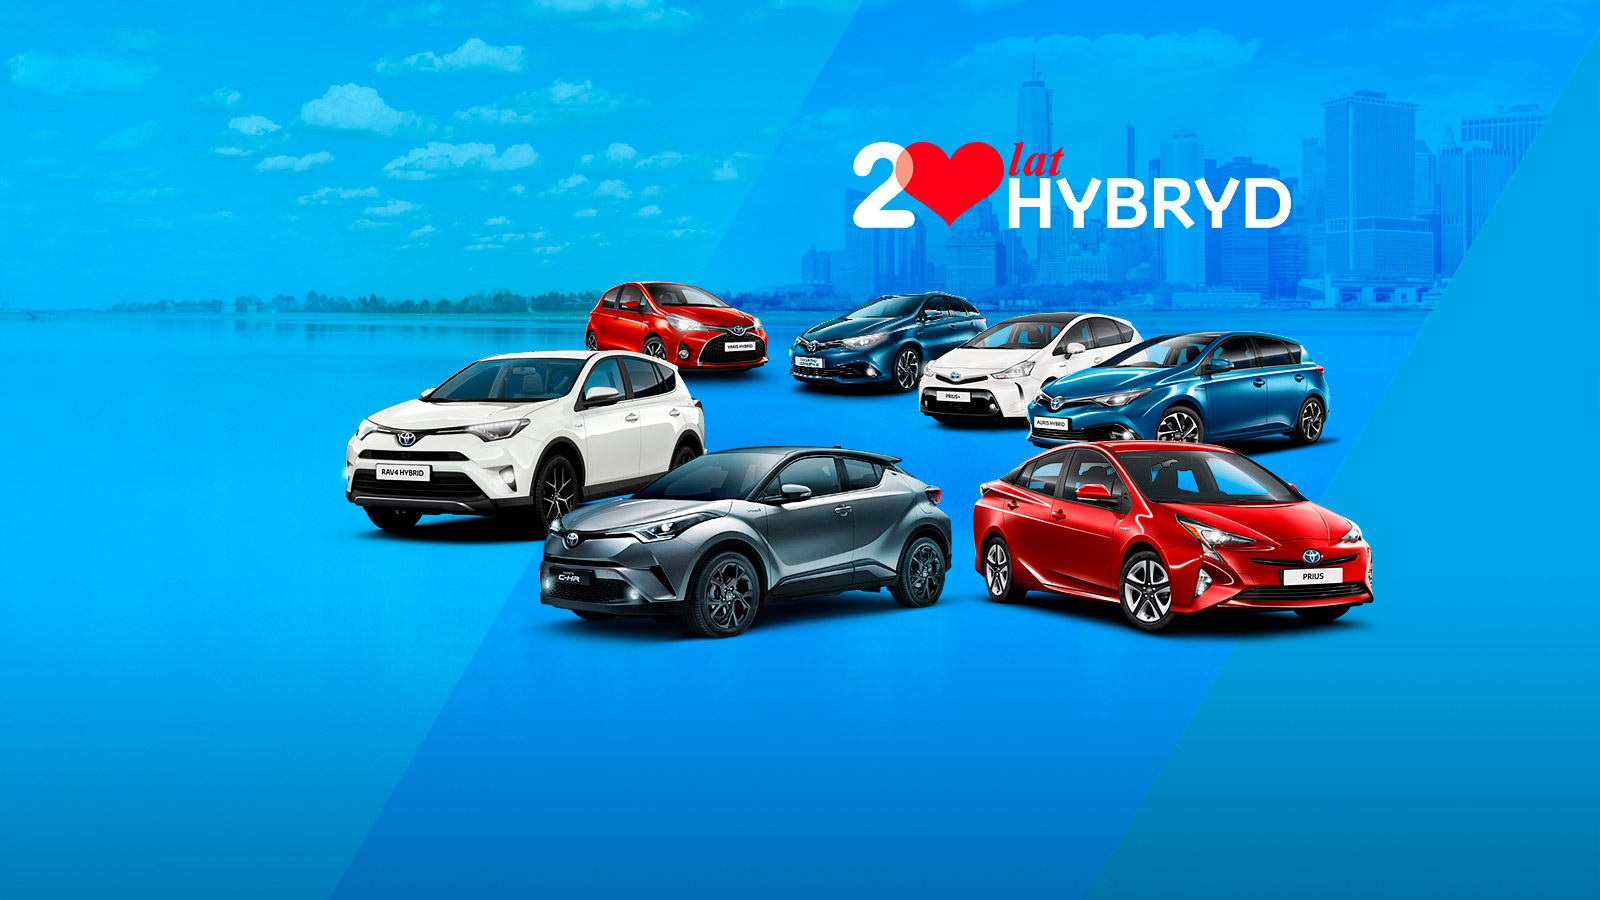 Toyota Business Plus - Poznaj Hybrydy